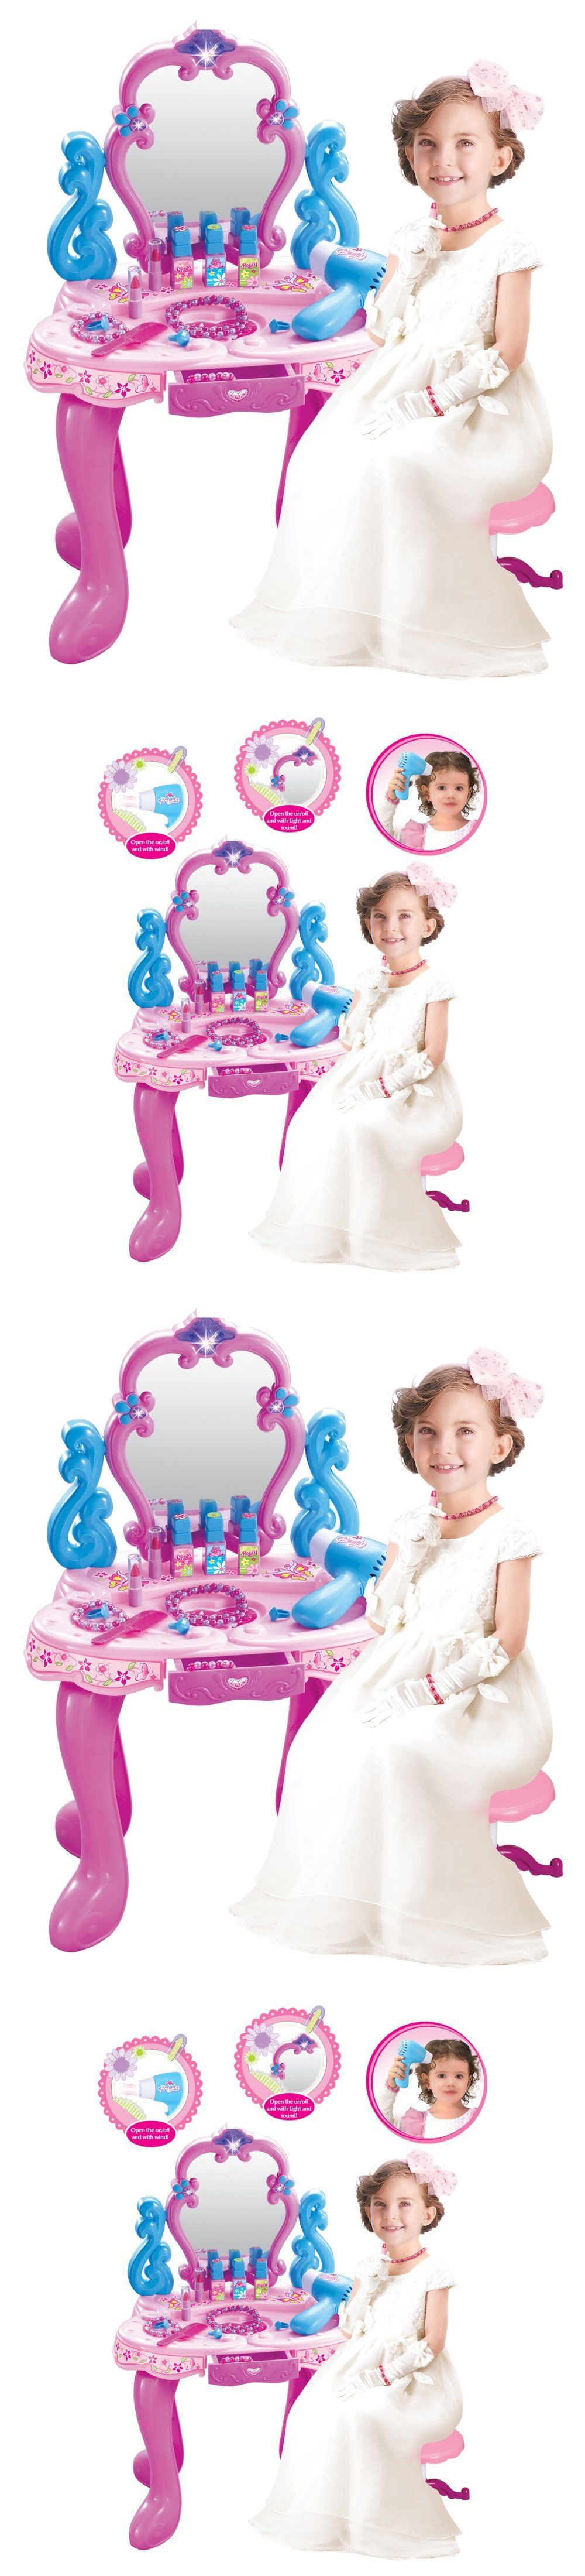 Other Preschool And Pretend Play 19181: Girls Portable Beauty Vanity Play  Set Pretend Play Dressing